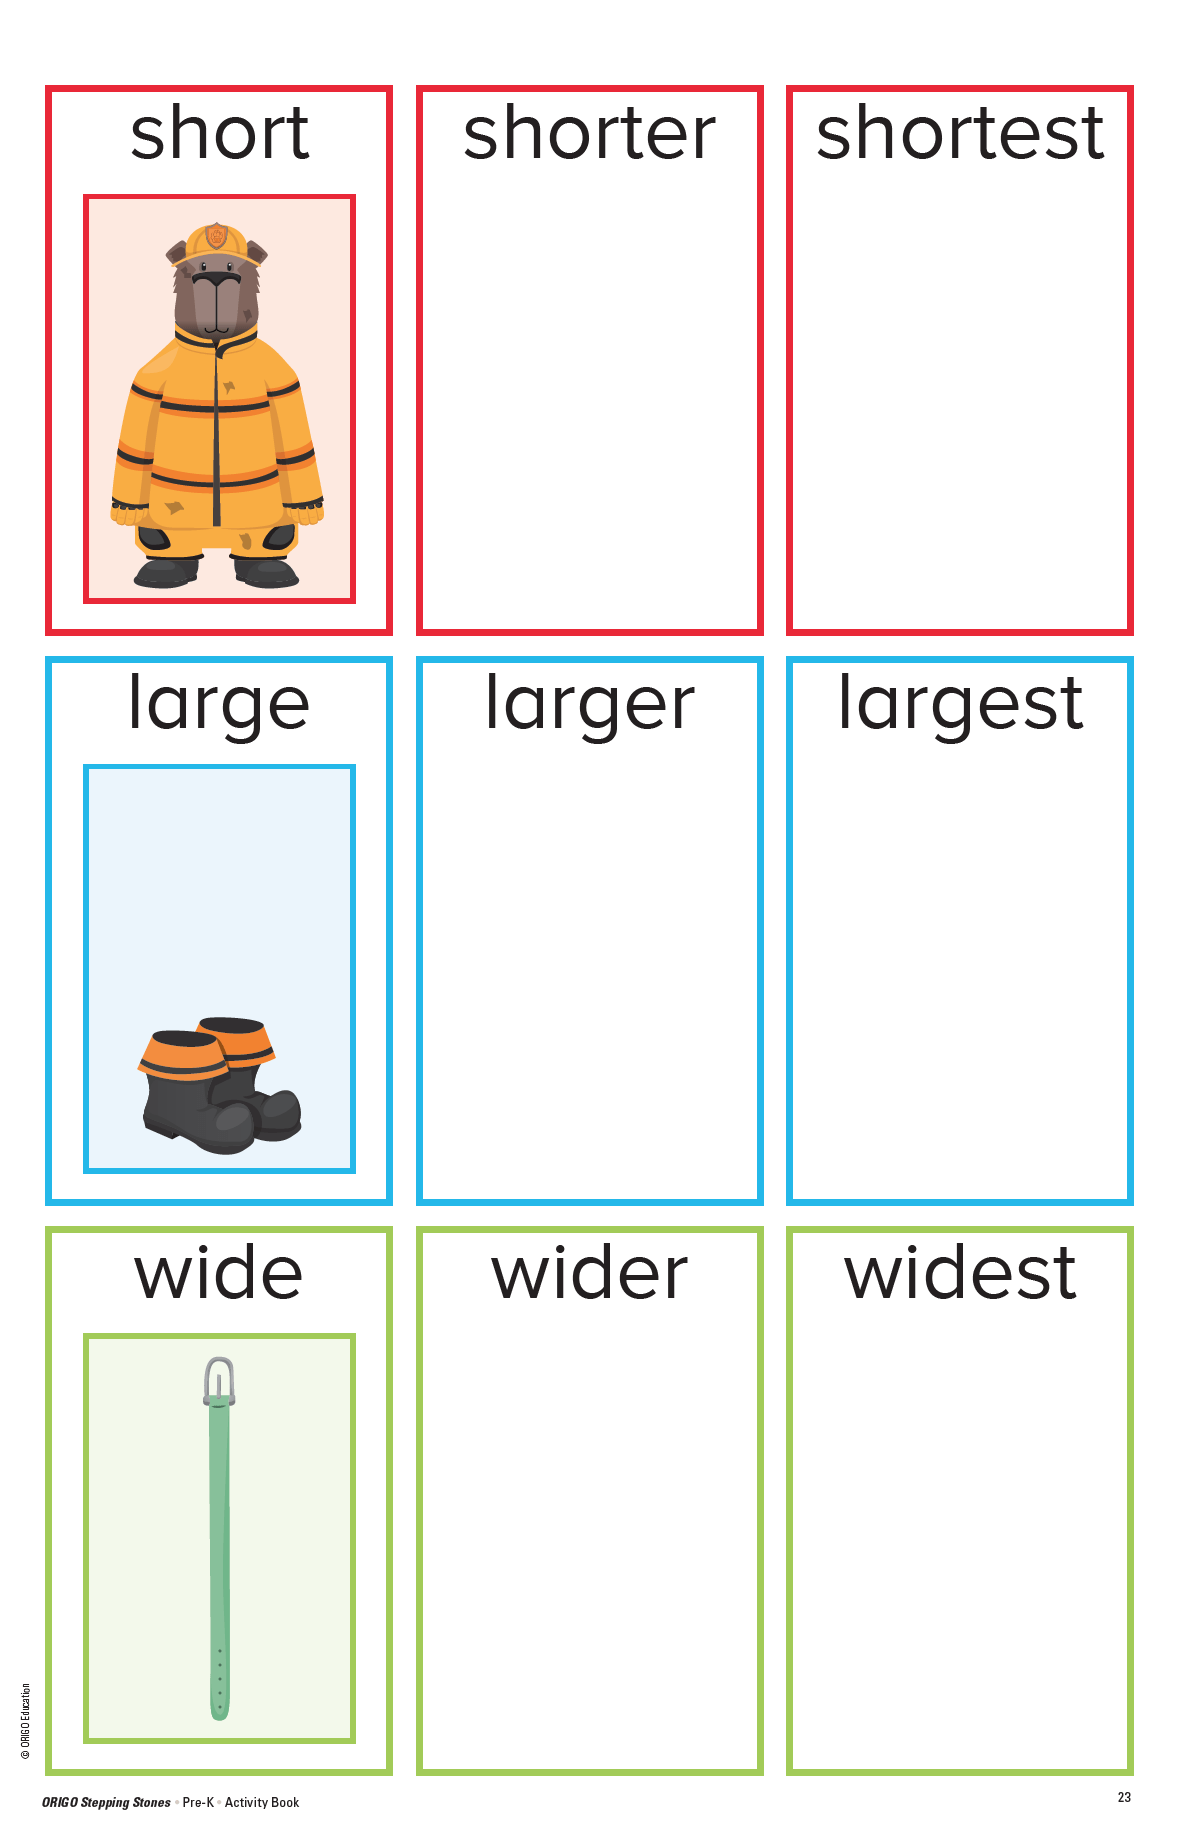 Stepping Stones Activity Book Pre K